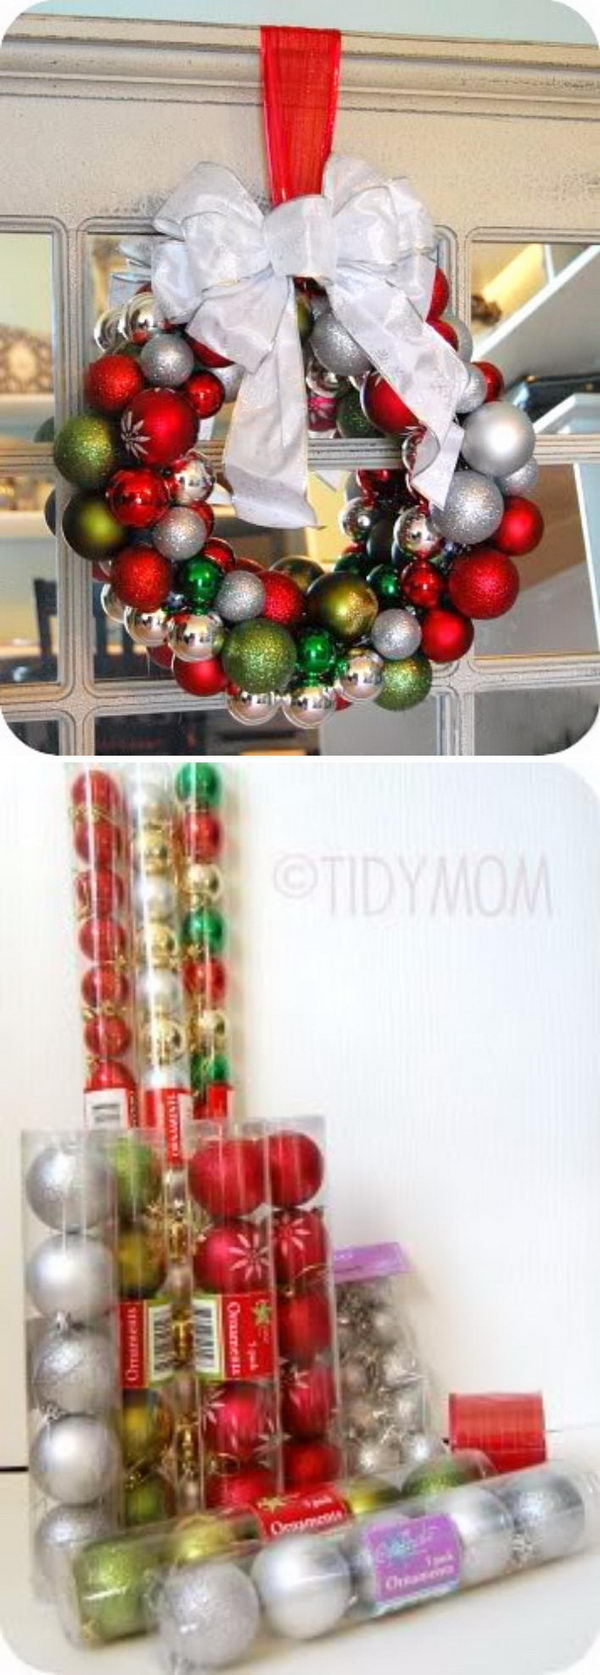 Www Christmas Ideas Decorations For Living Room: 30 Dollar Store Christmas Ideas 2017